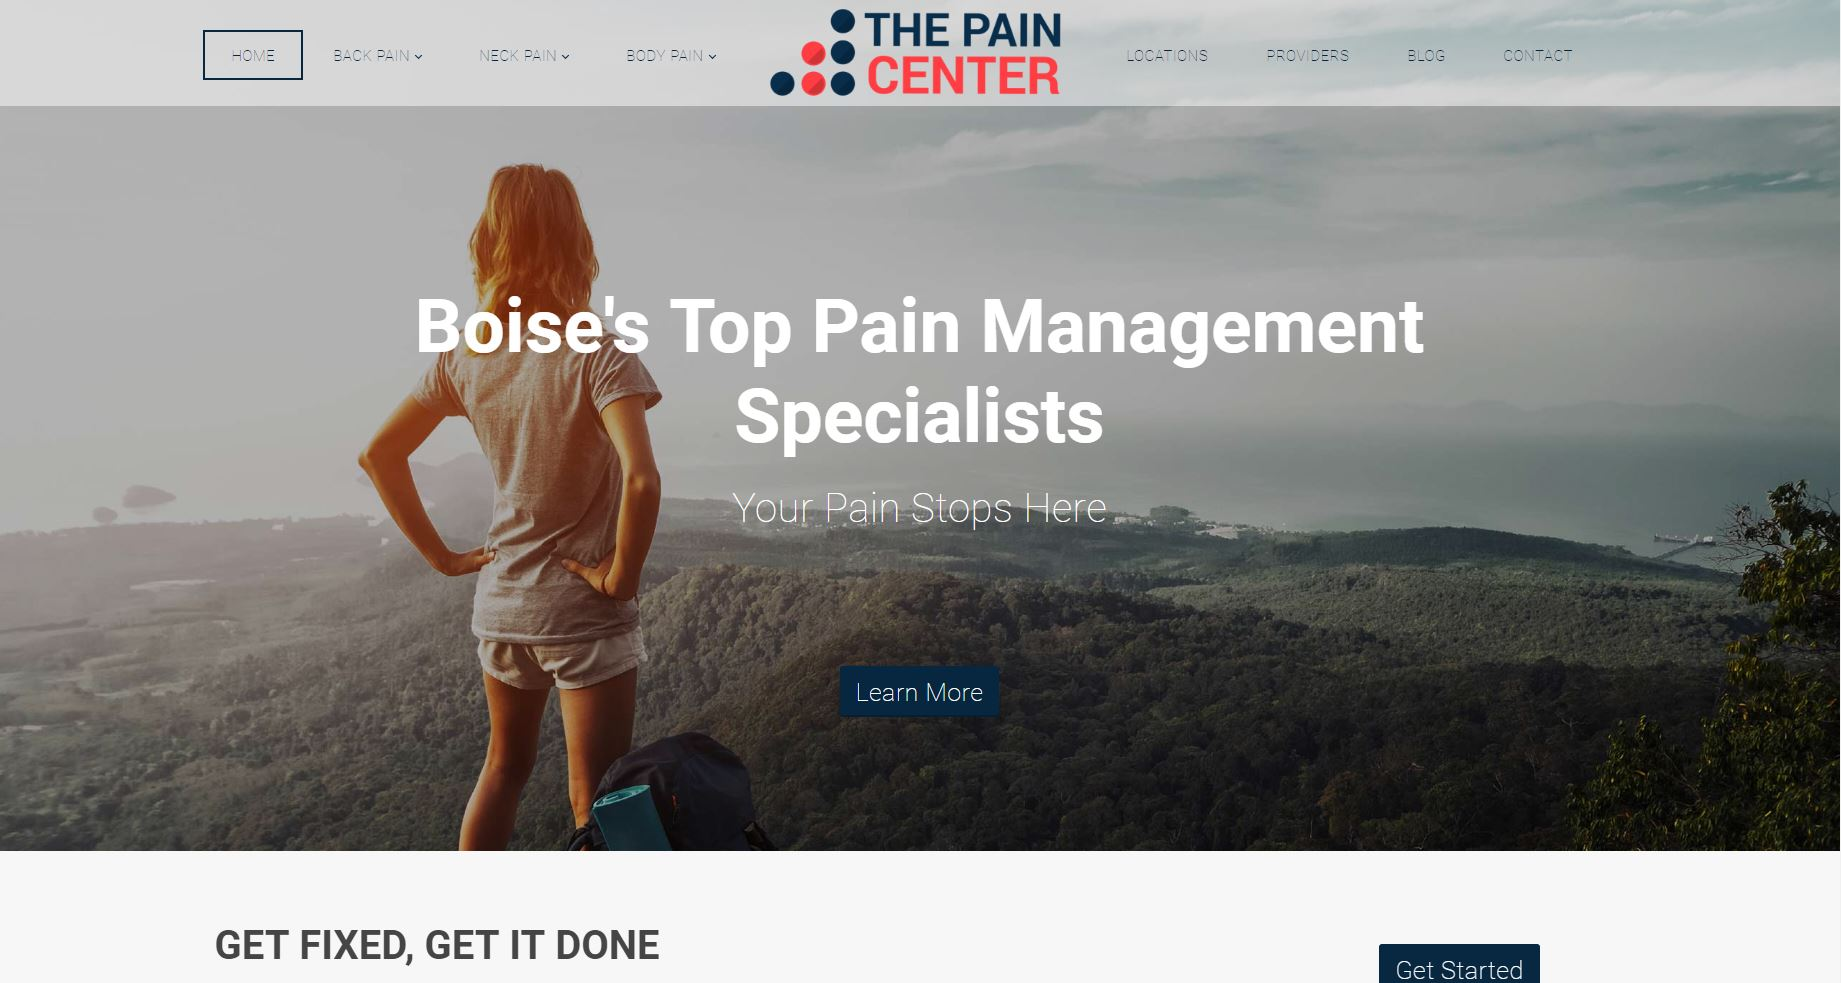 The Pain Center